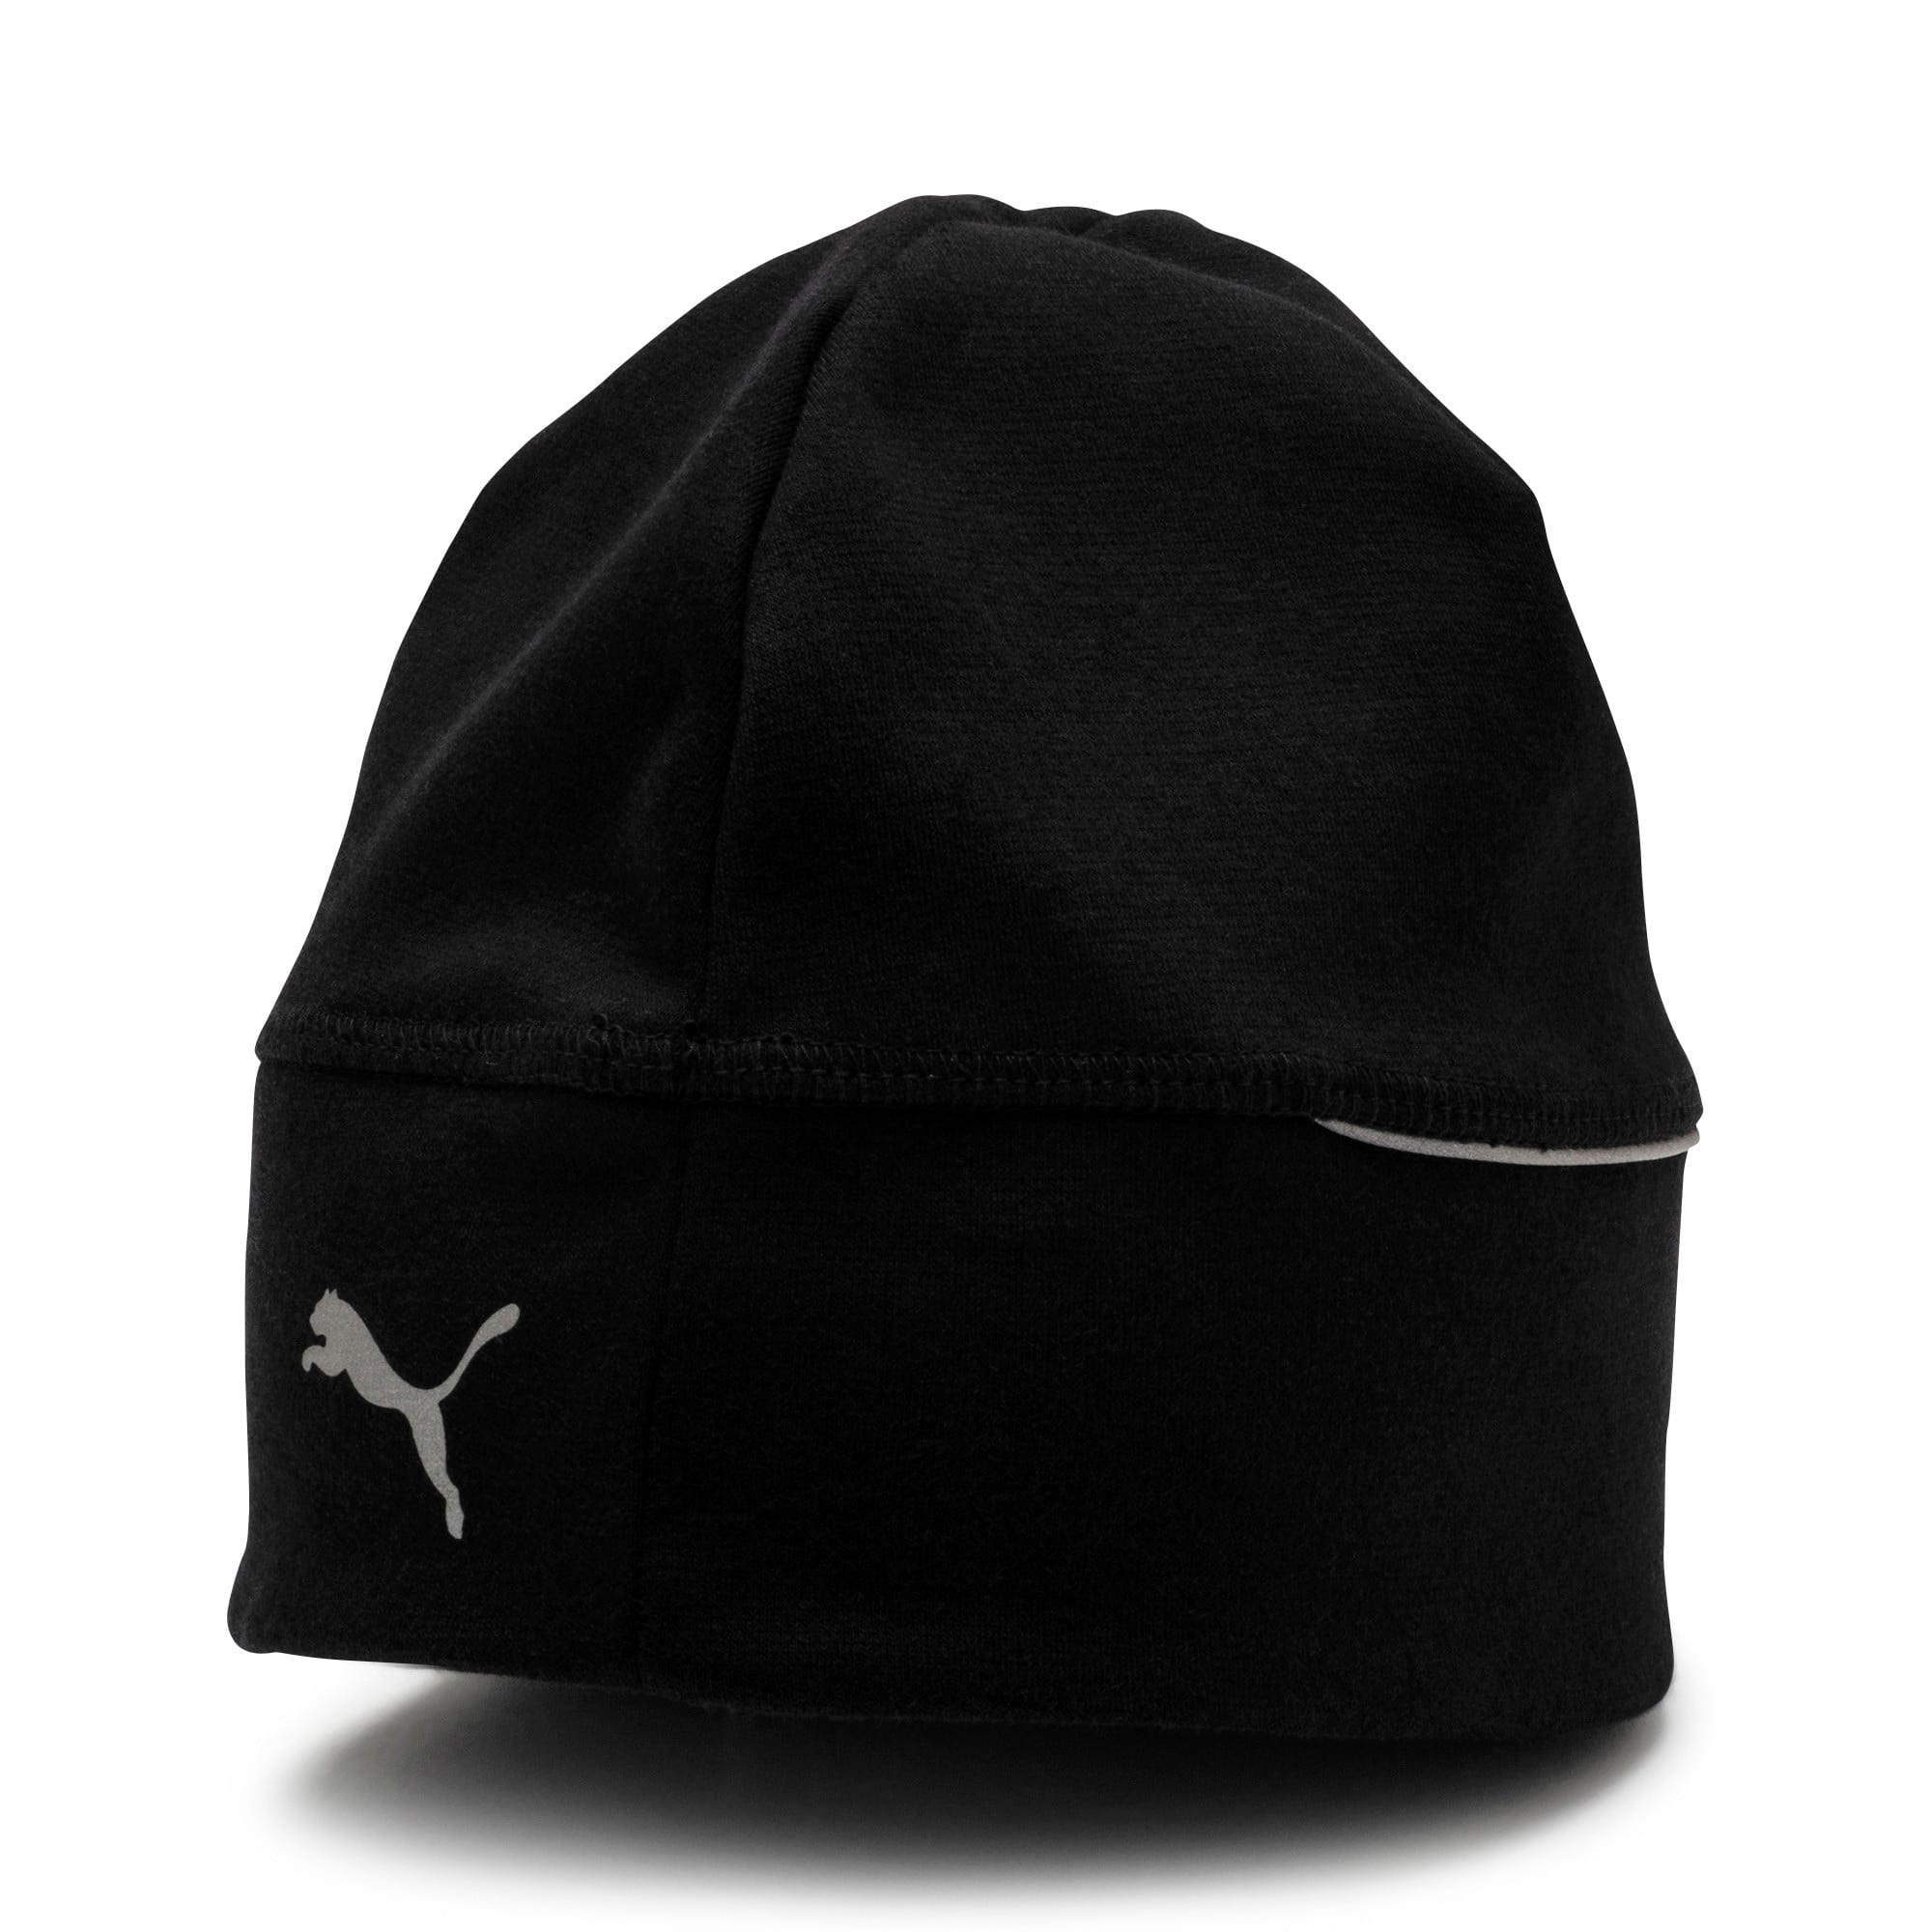 Thumbnail 1 of Reflective Running beanie, Puma Black, medium